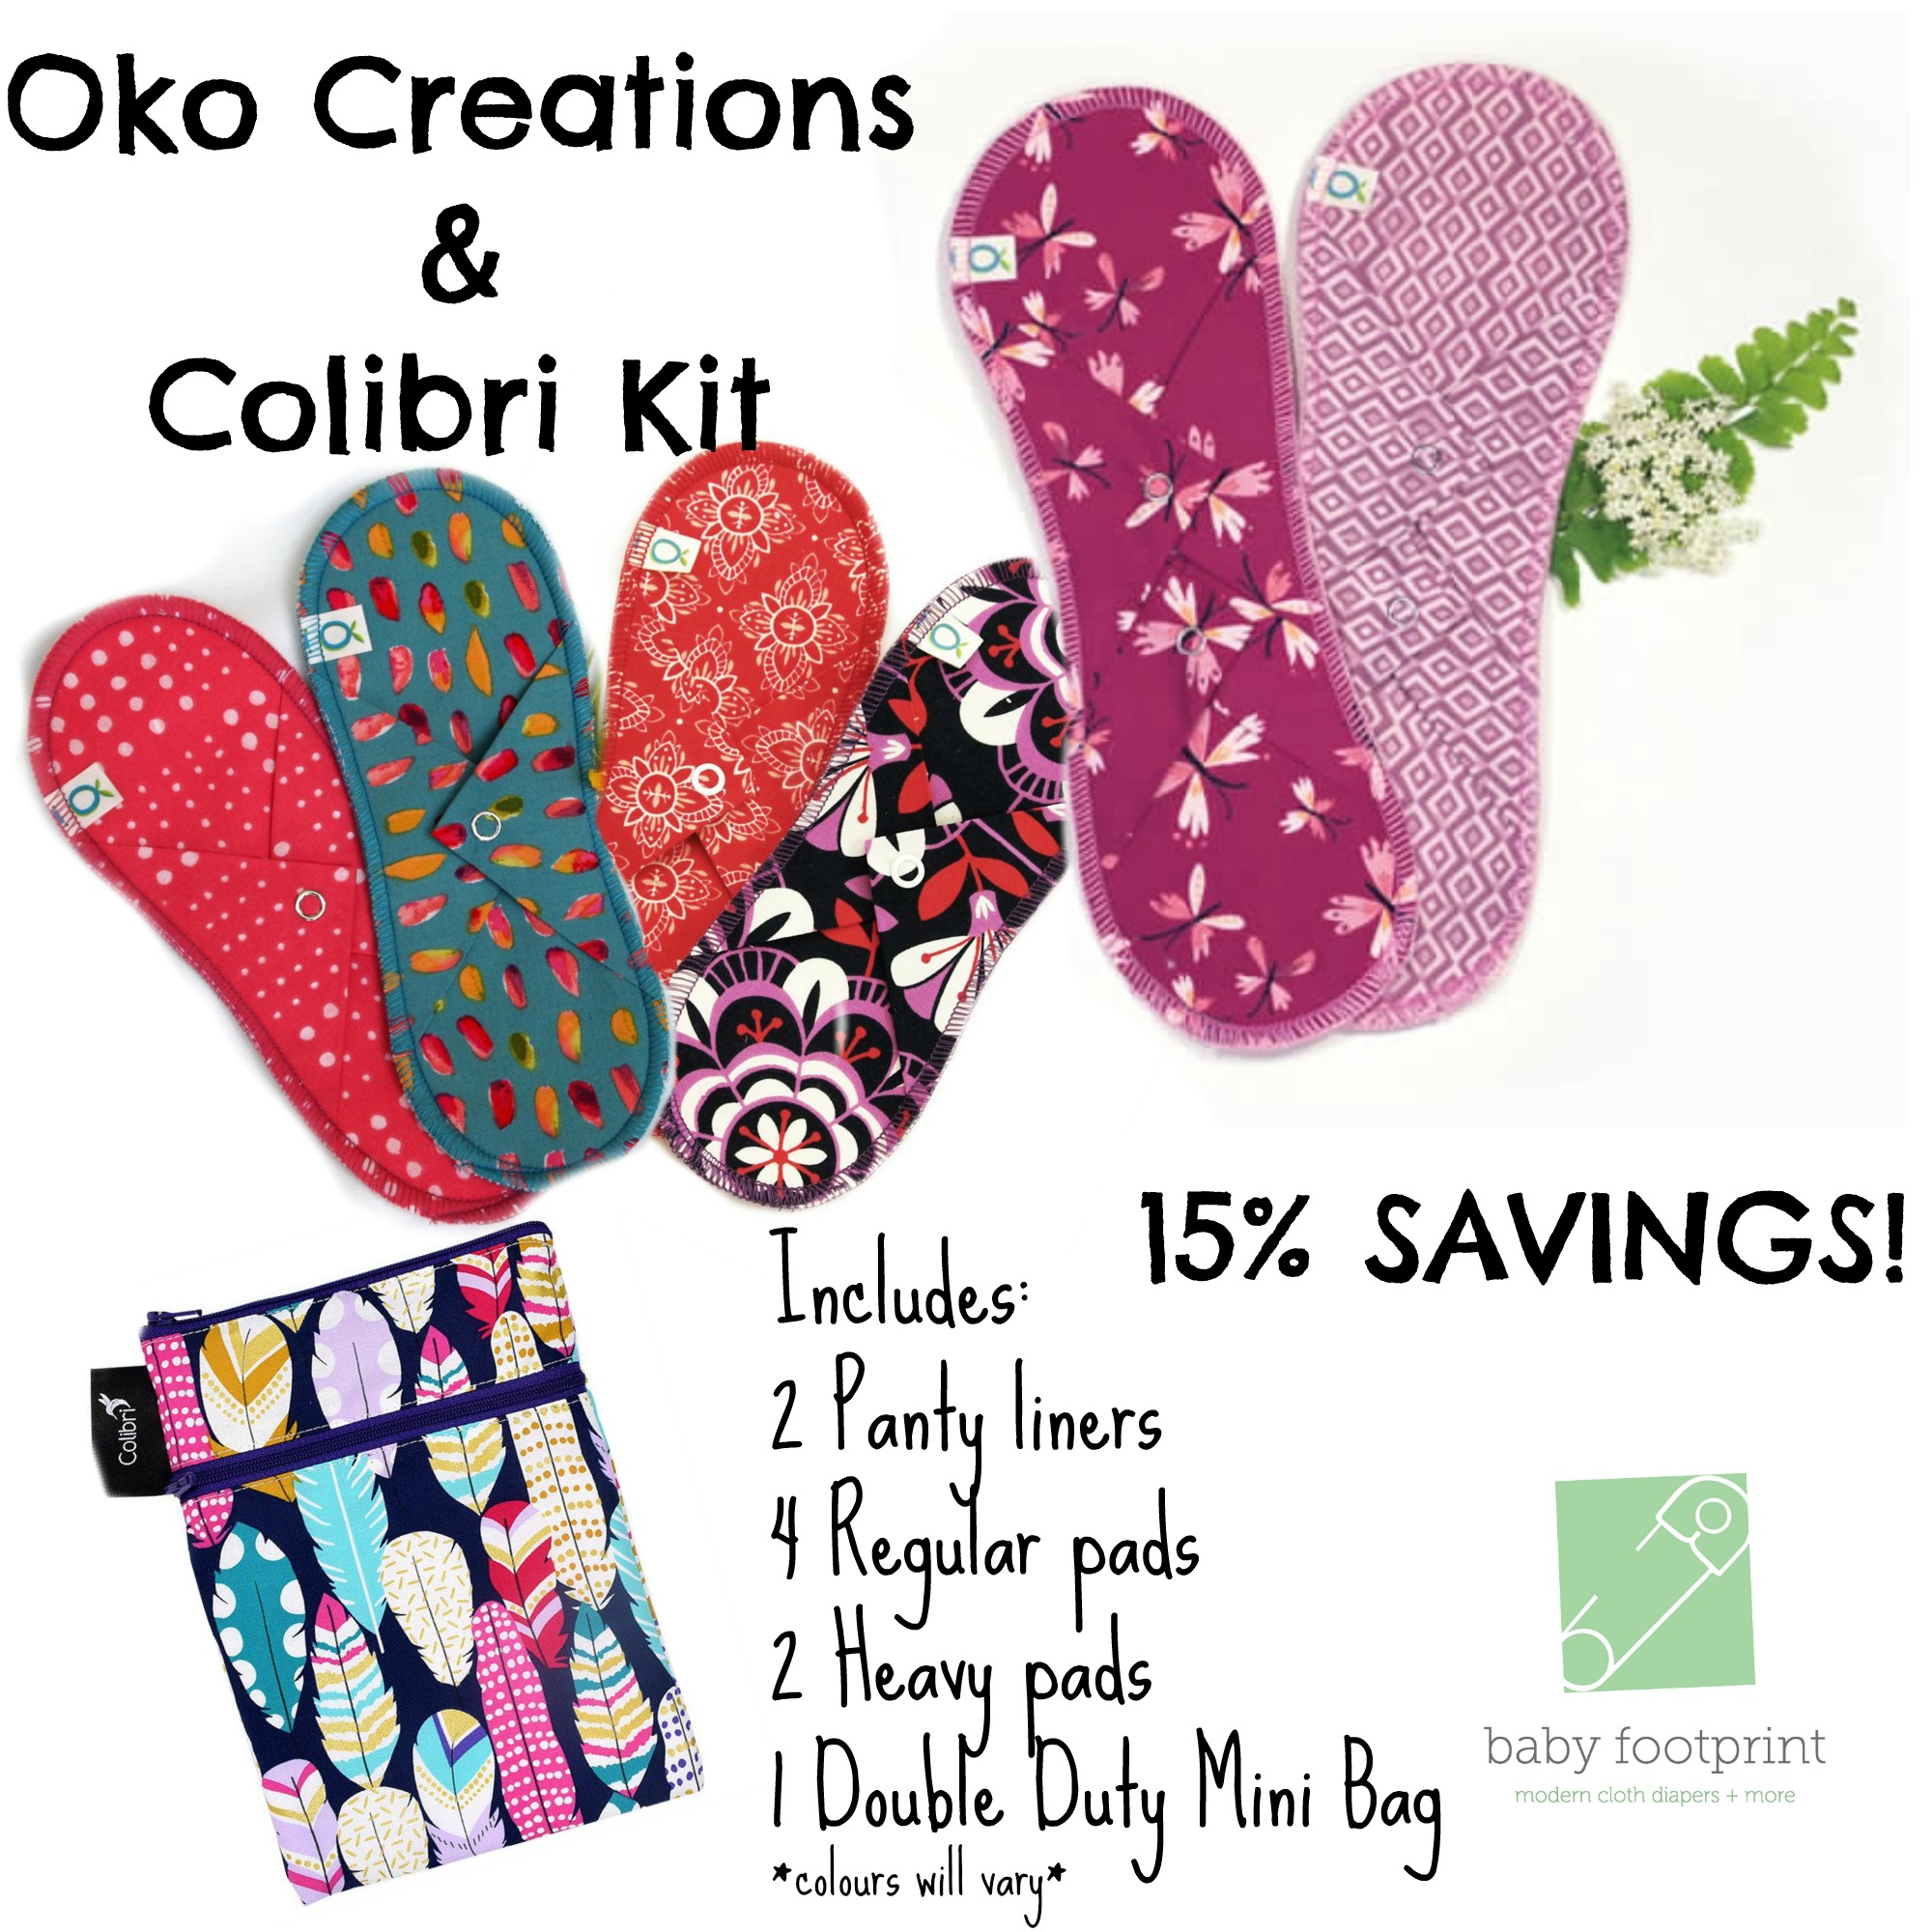 Oko Creations & Colibri Mama Cloth Kit